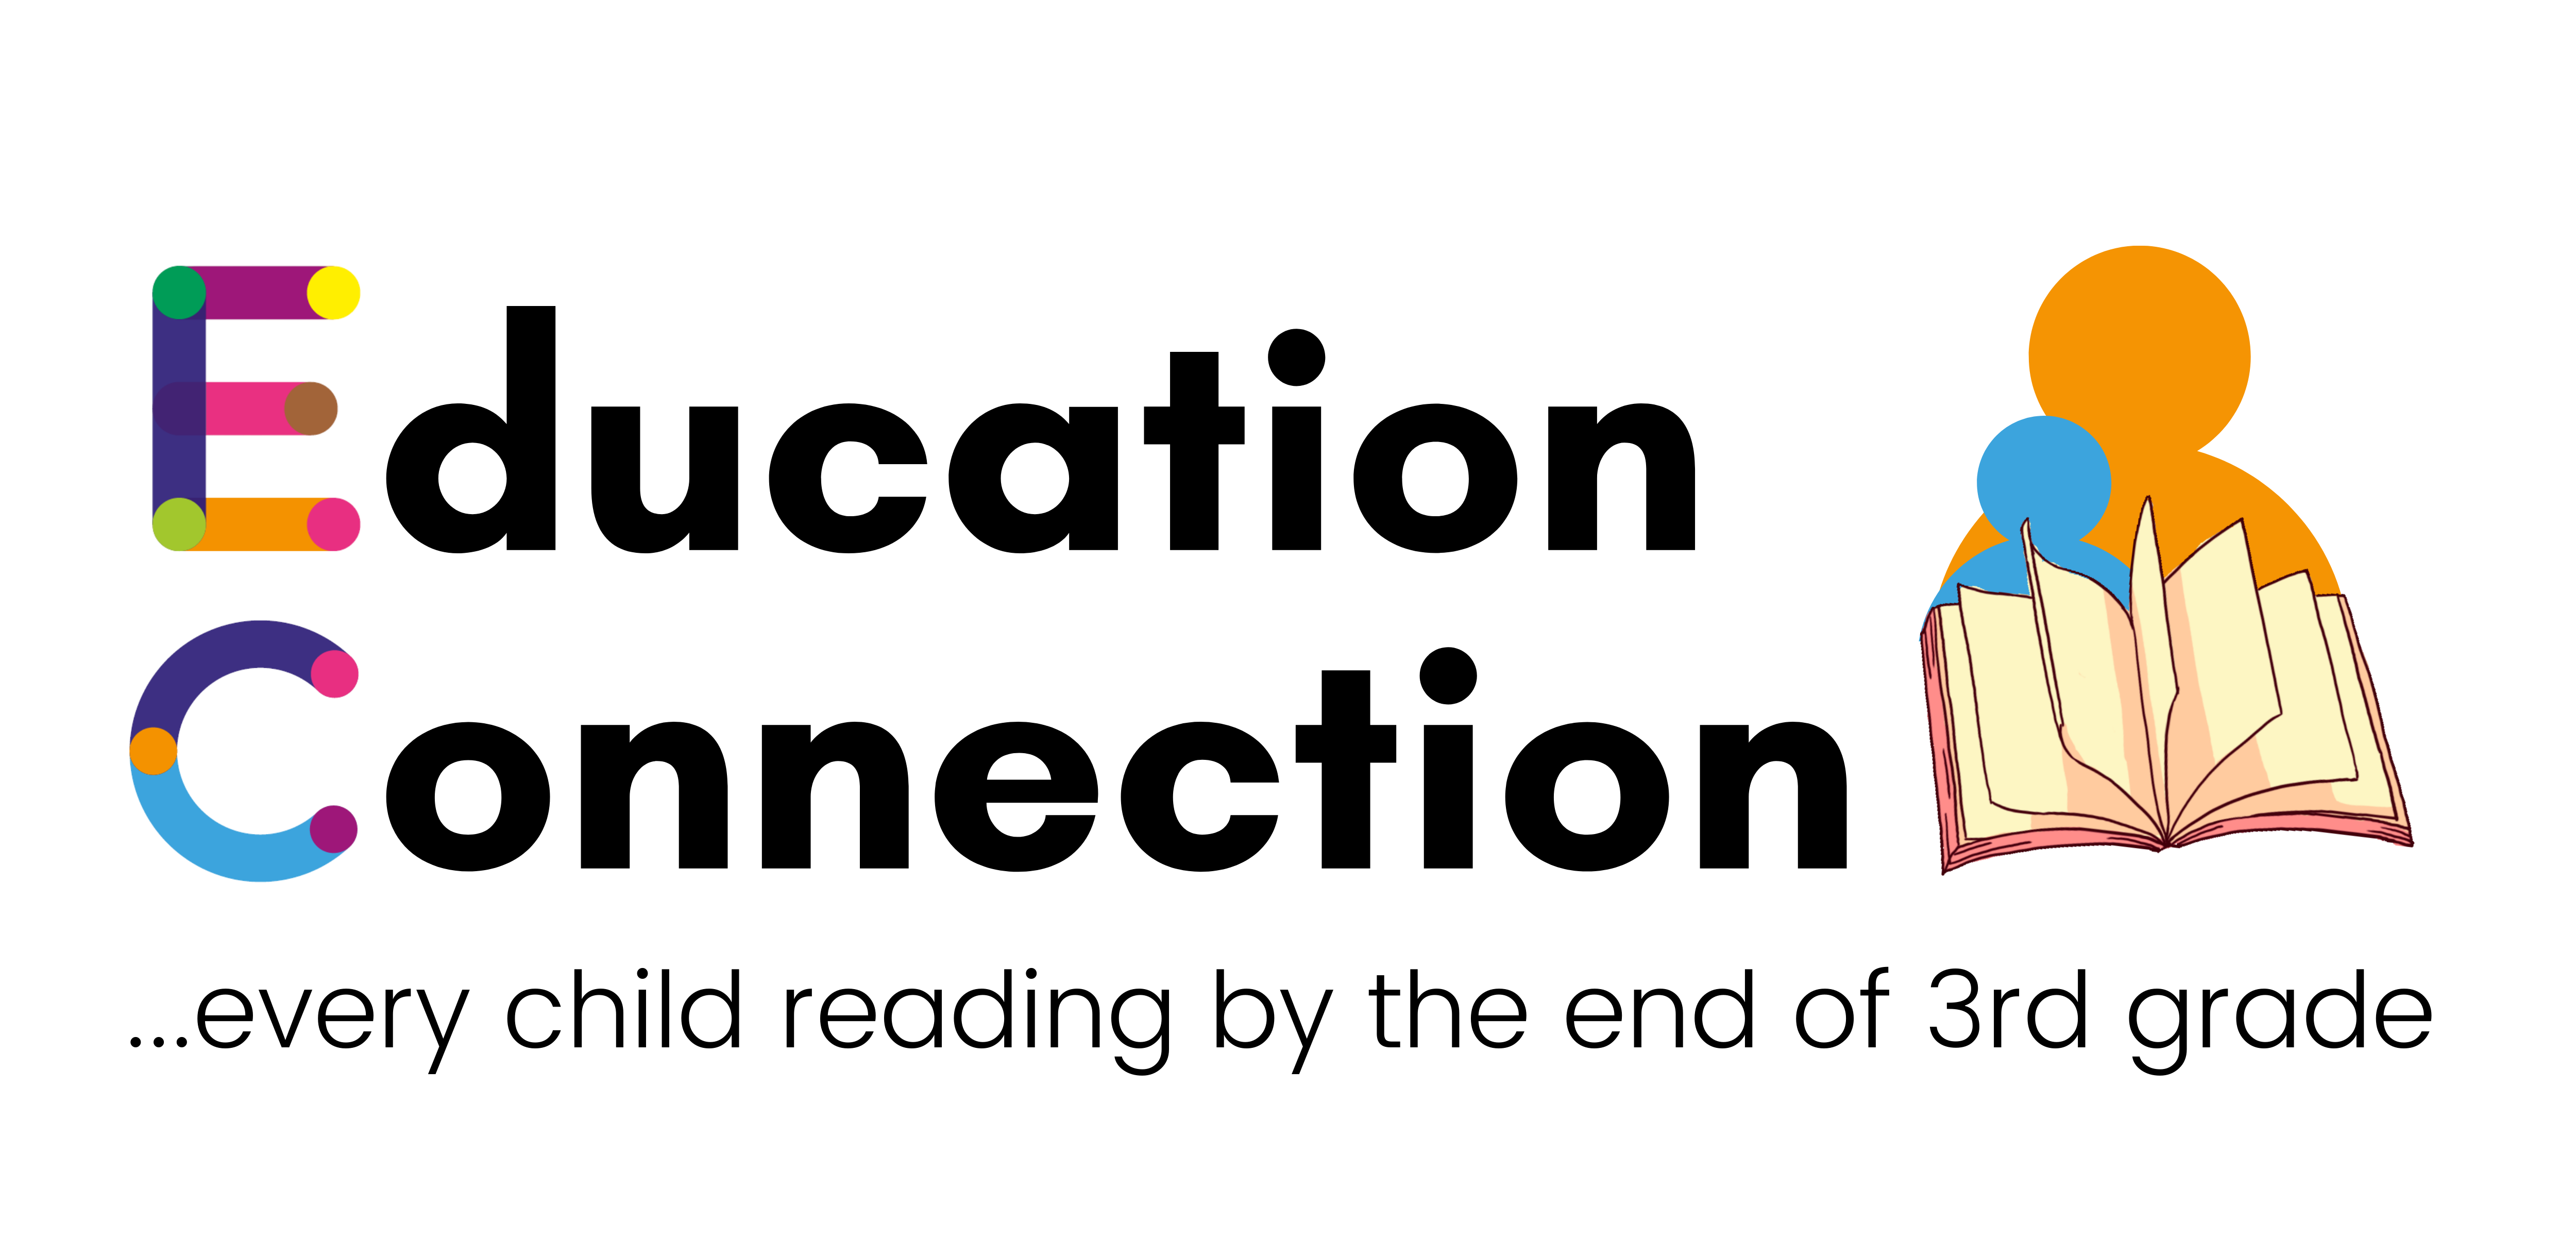 Education Connection... every child reading by the end of 3rd grade